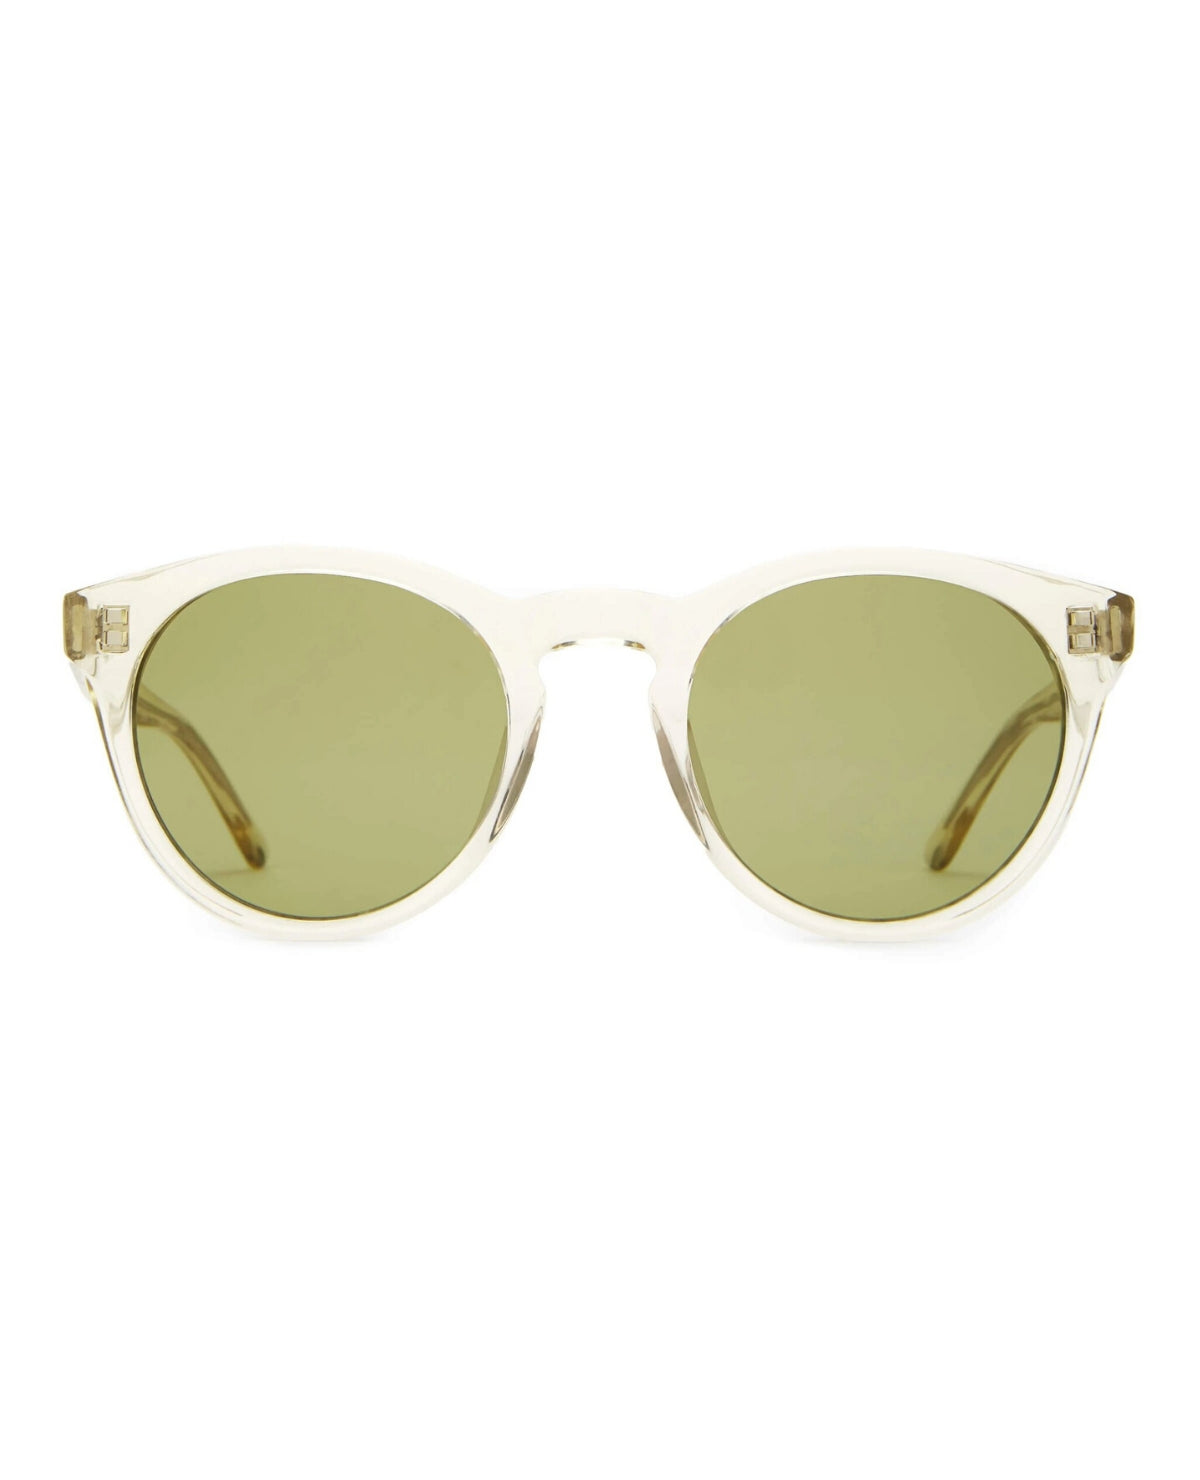 CRAP EYEWEAR The Shake Appeal / Crystal Champagne/ Olive